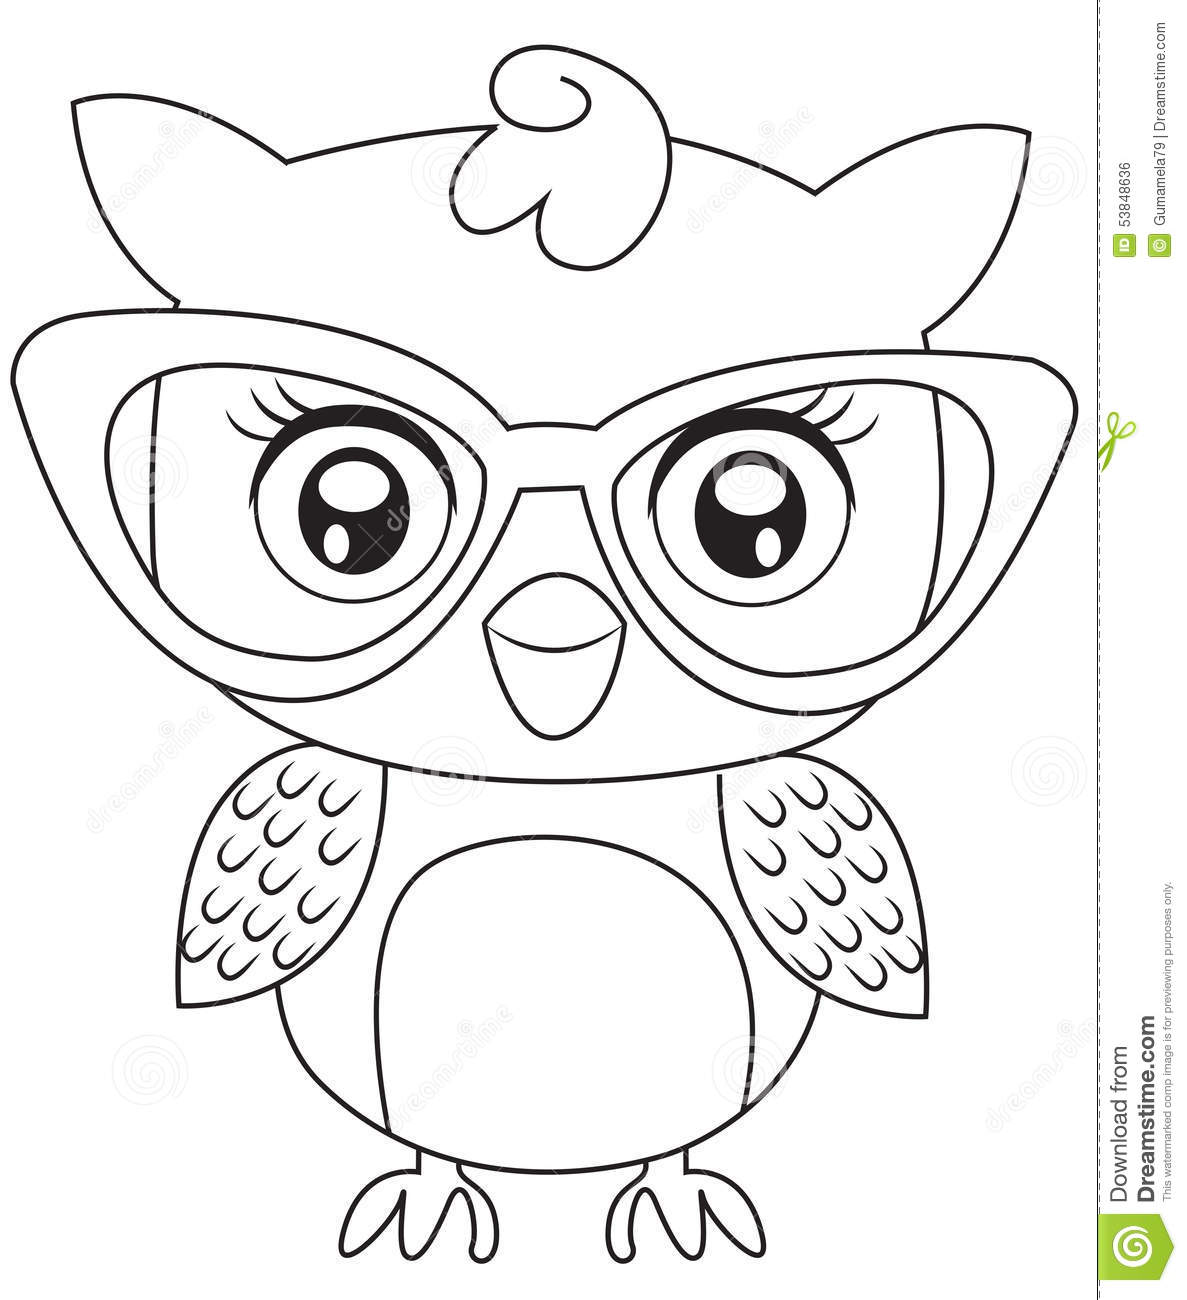 royalty free stock image  owl with eyeglasses coloring page  image  53848636